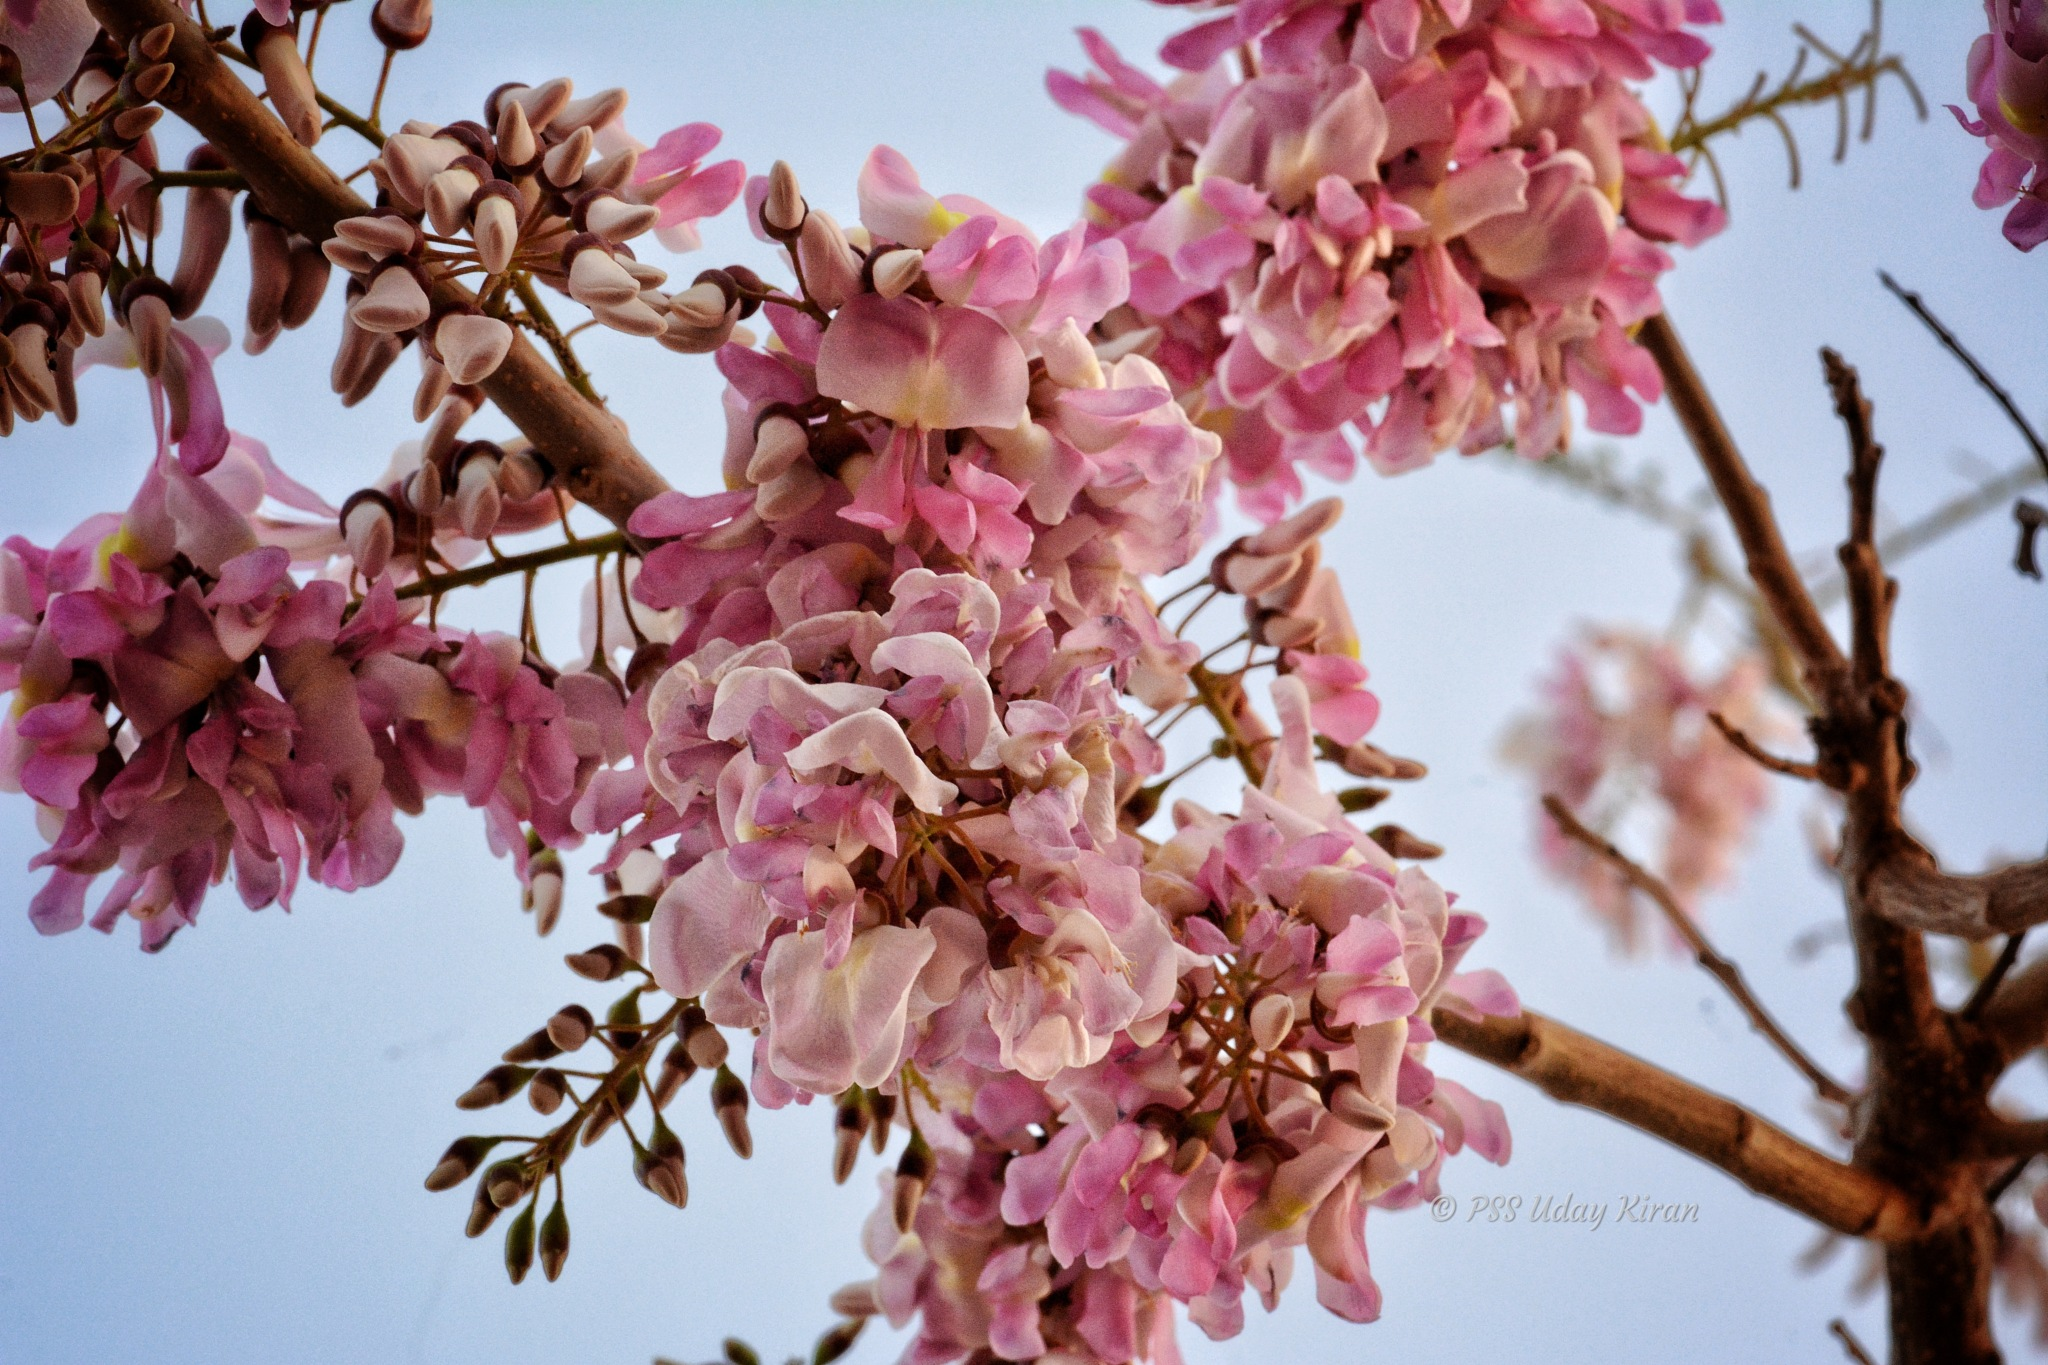 Flowers, on trees, bring so much joy!  by Uday